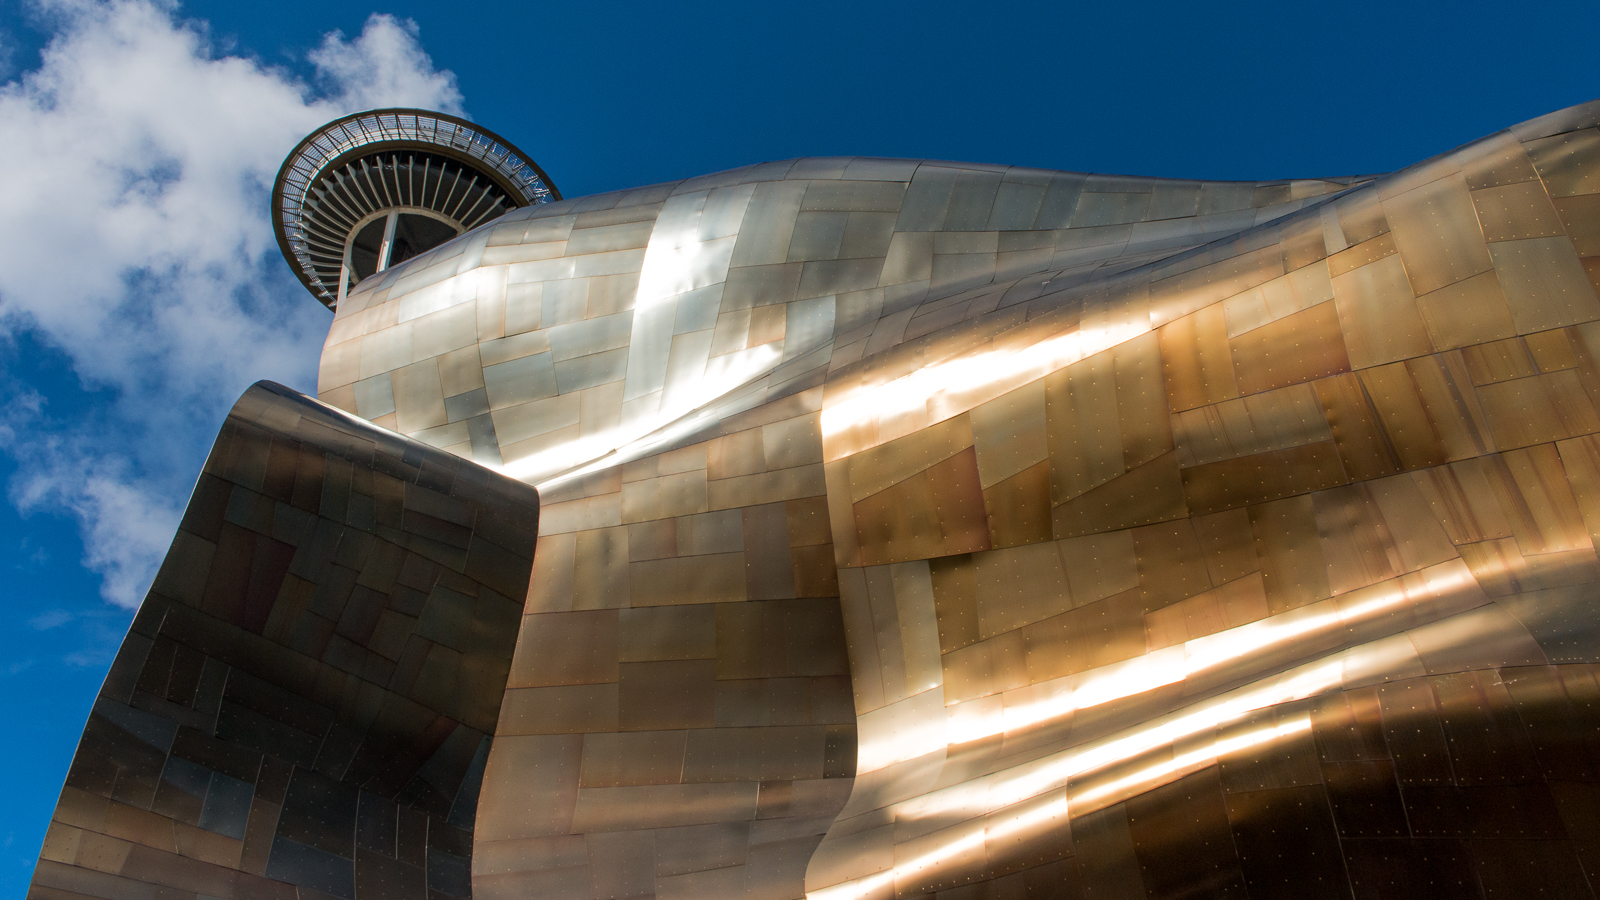 18_emp-museum-space-needle-seattle